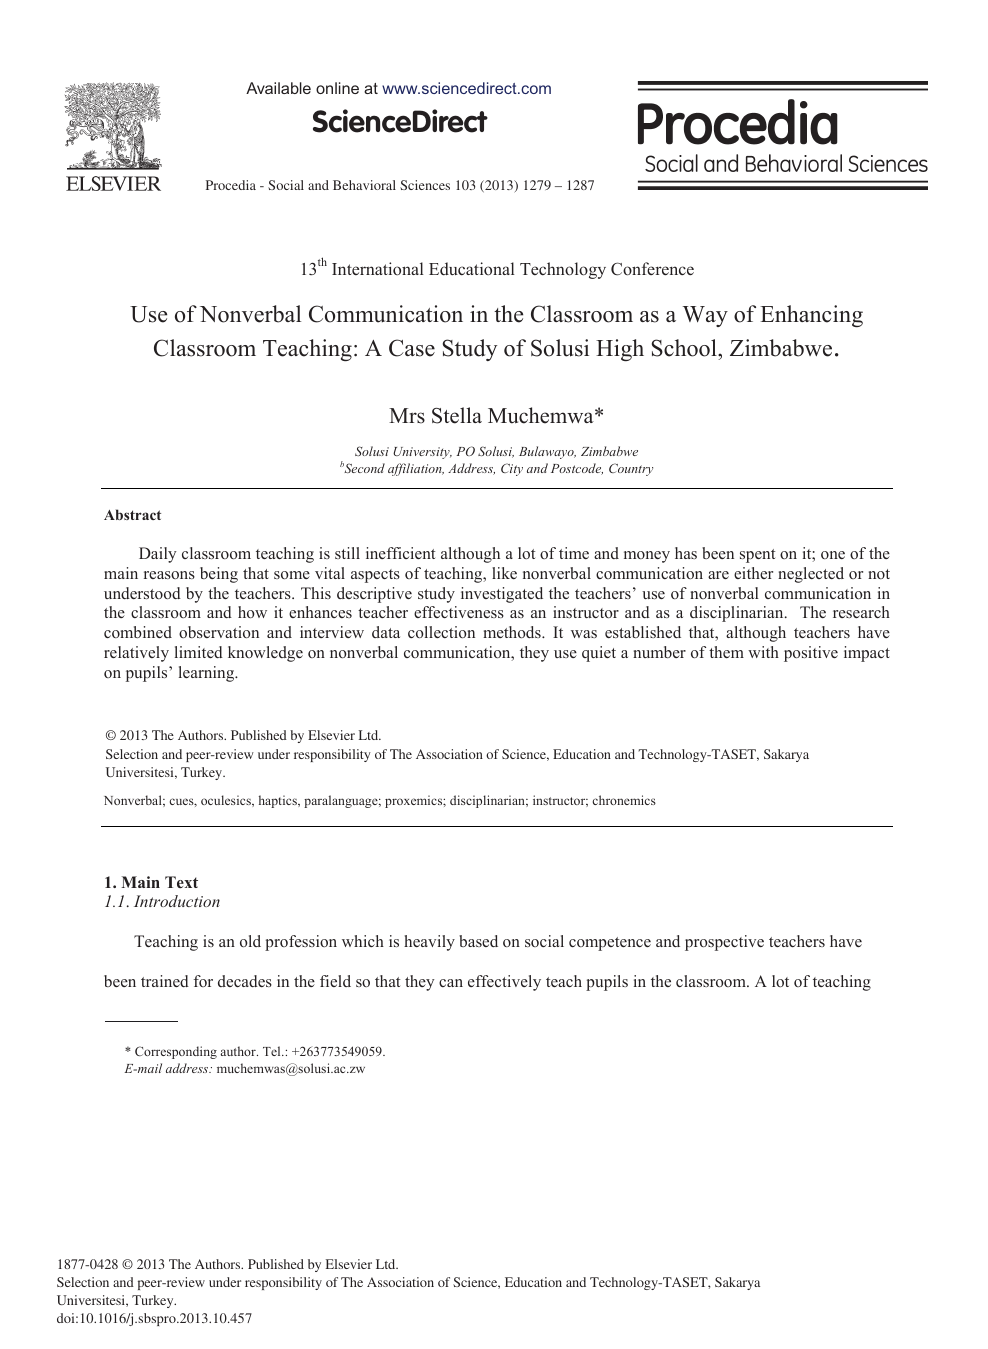 Use Of Nonverbal Communication In The Classroom As A Way Of Enhancing Classroom Teaching A Case Study Of Solusi High School Zimbabwe Topic Of Research Paper In Educational Sciences Download Scholarly It is one of several subcategories of the study of nonverbal communication. use of nonverbal communication in the